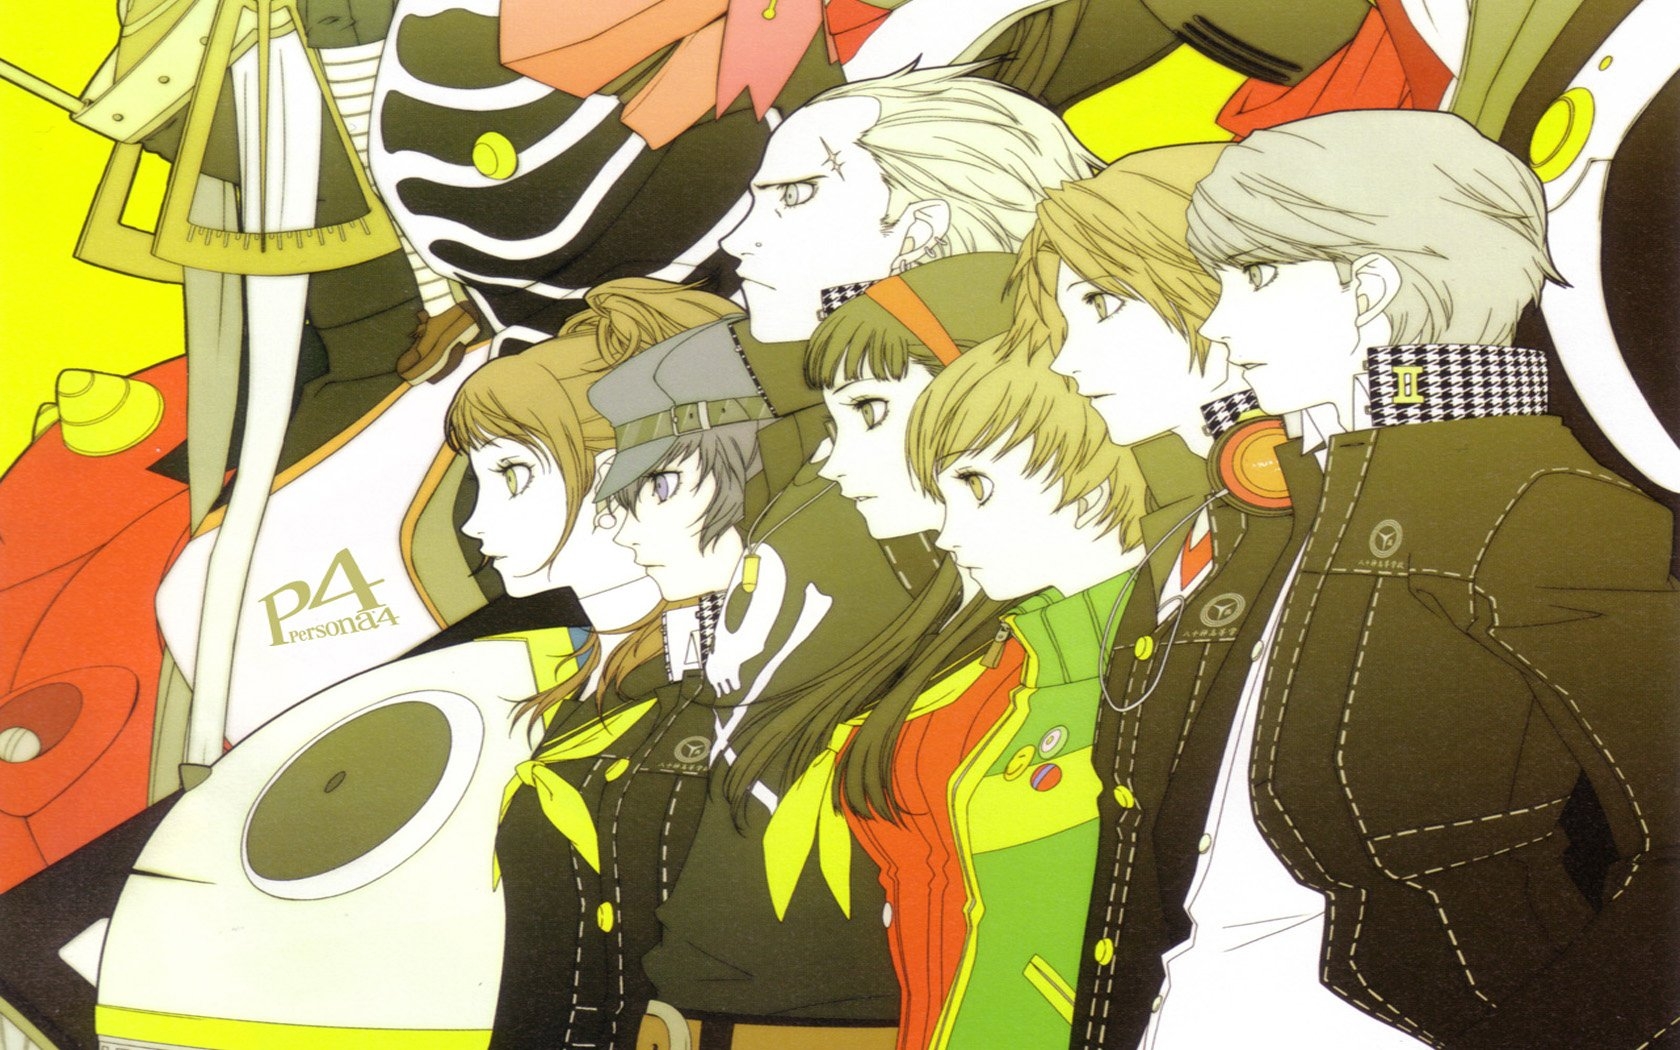 Persona 4 Phone Wallpaper